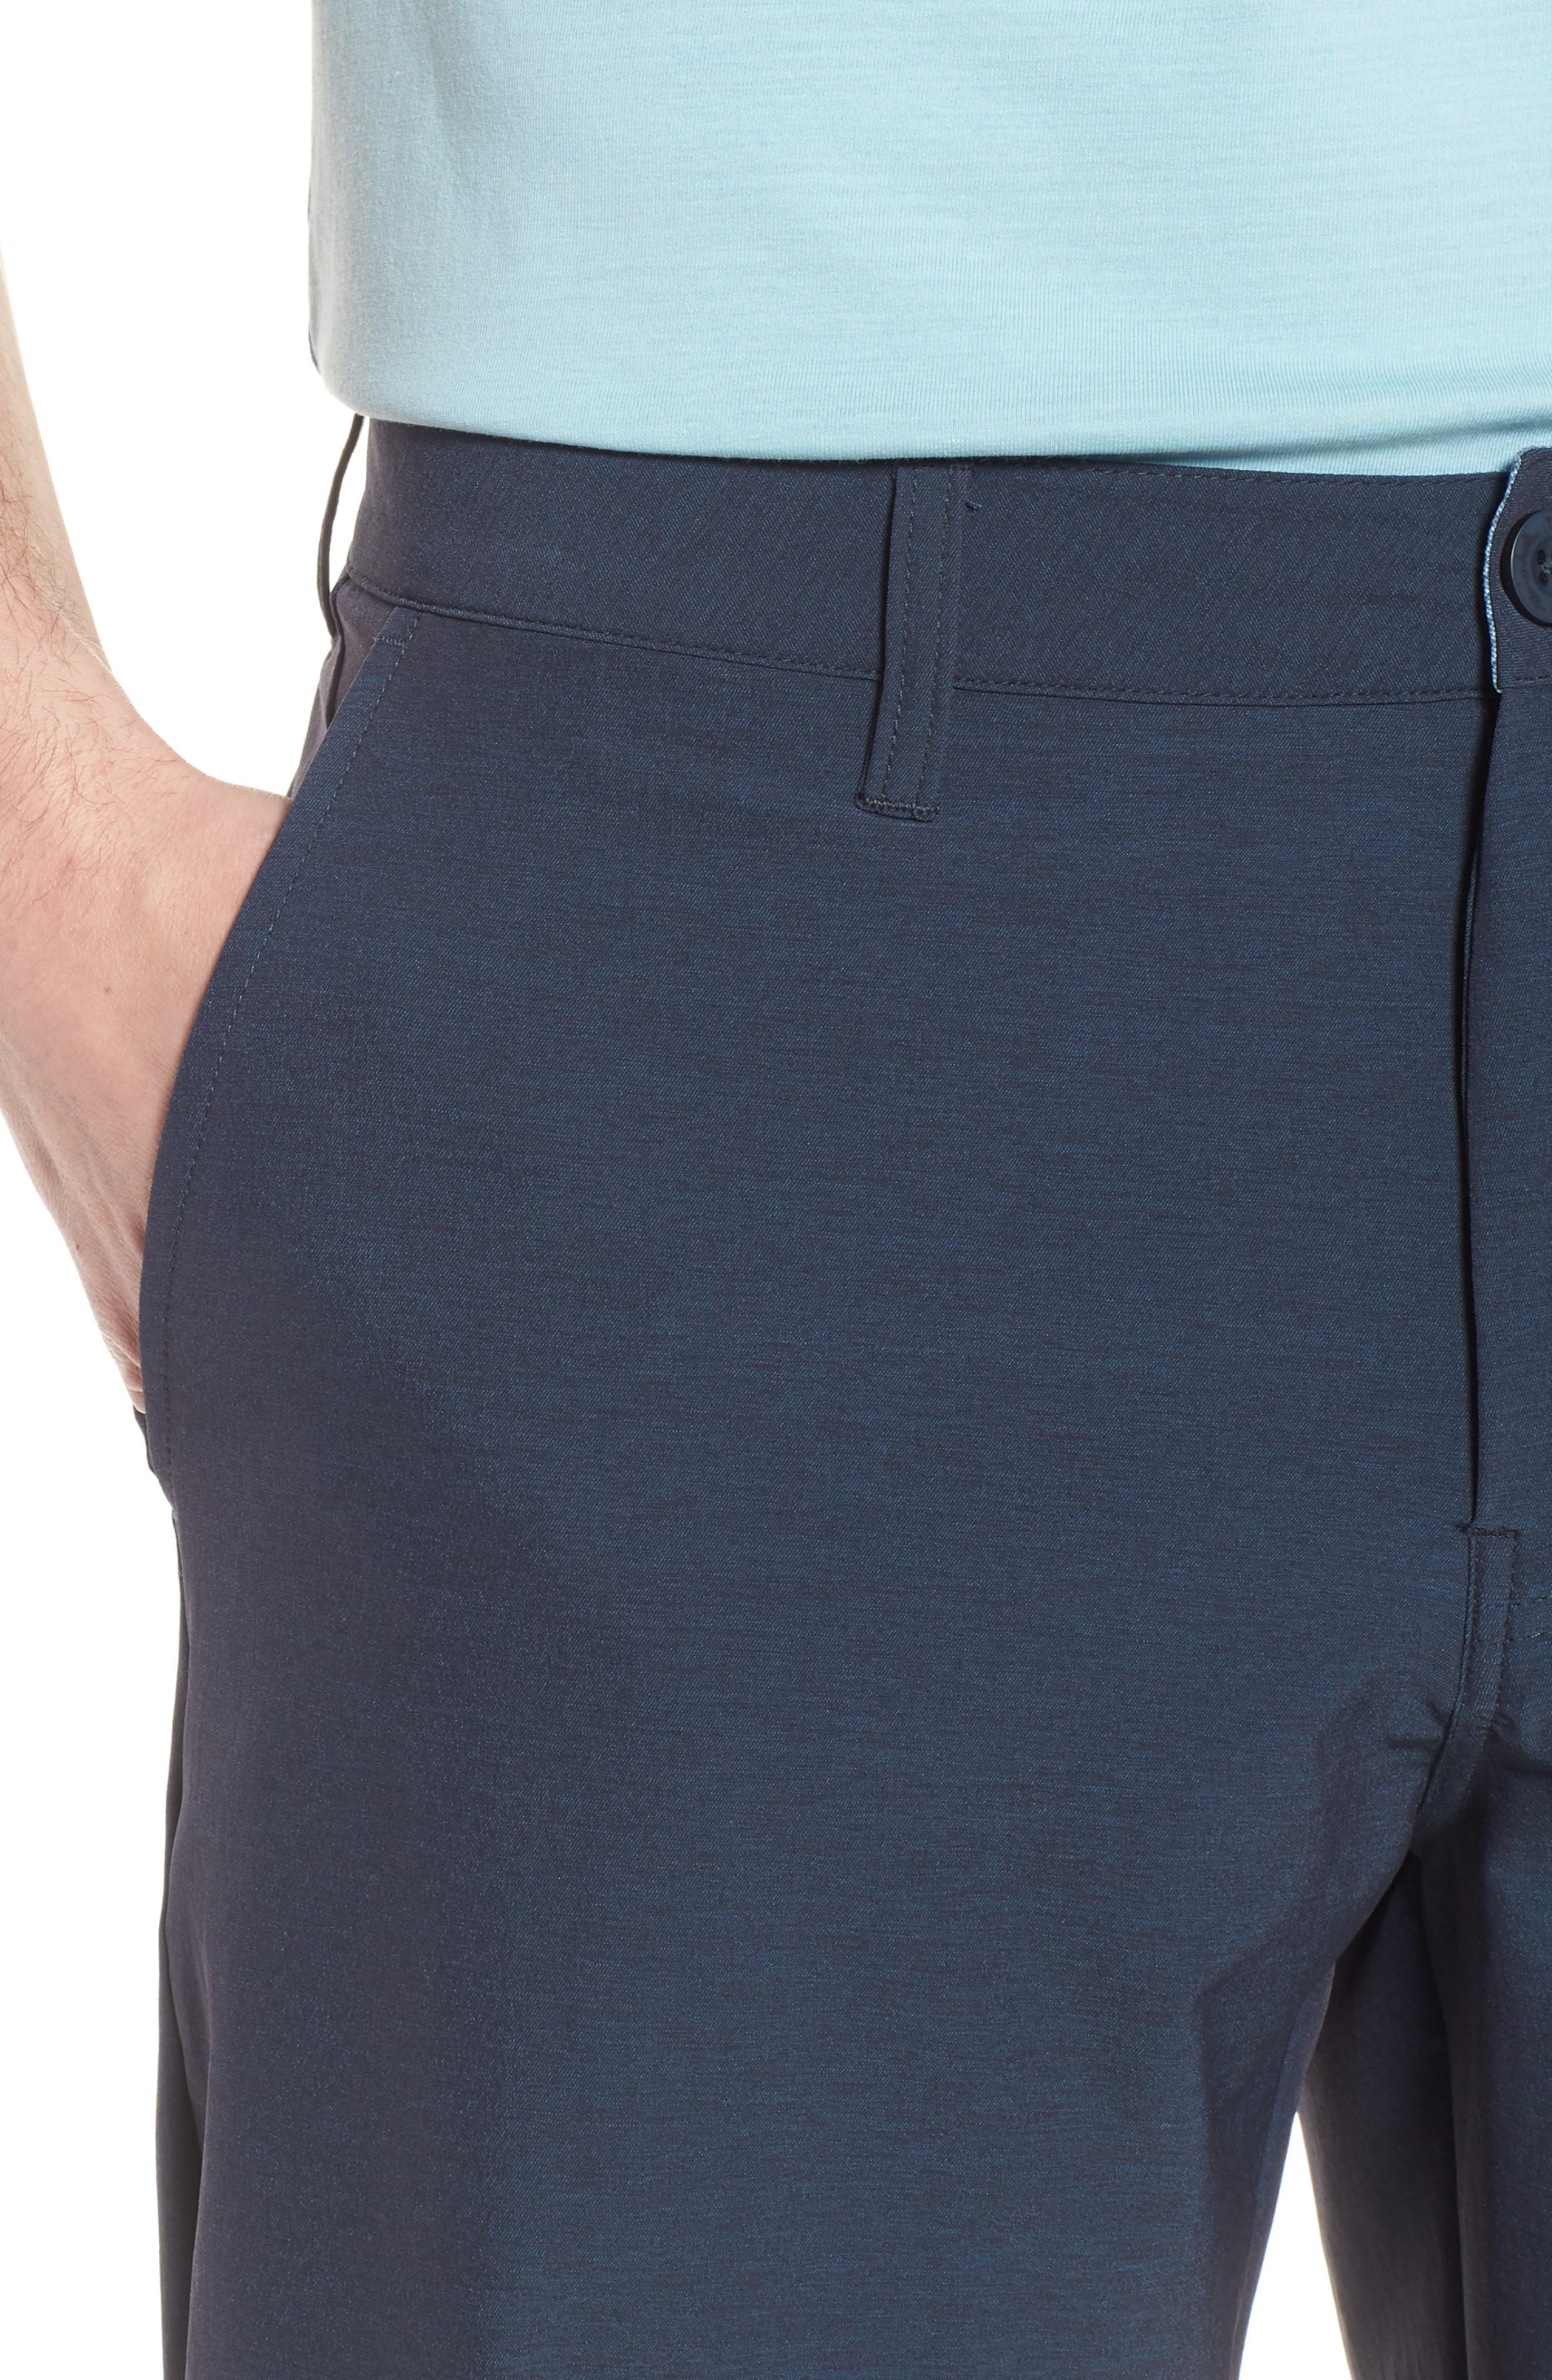 Pancho Shorts,                             Alternate thumbnail 4, color,                             Blue Nights/ French Blue